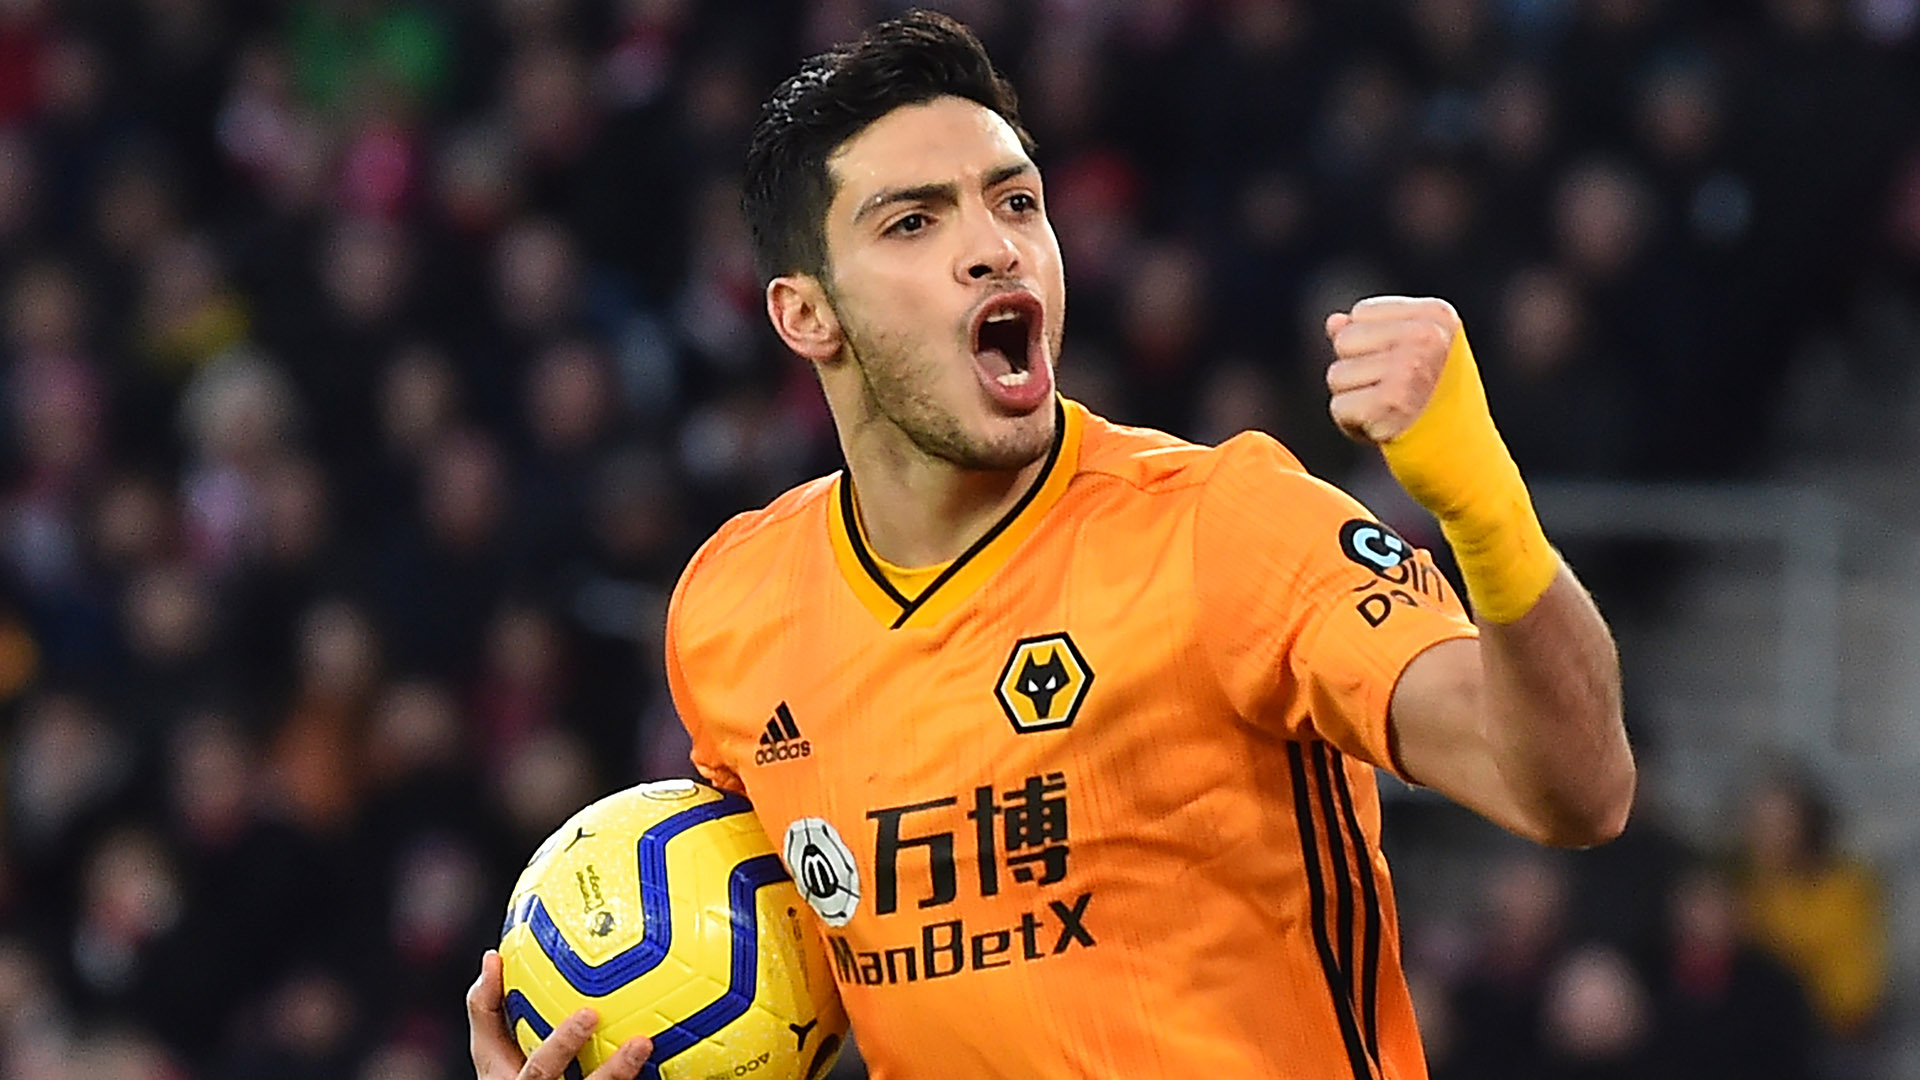 'I can imagine Jimenez playing with Man City' - Gundogan says Wolves star good enough for Guardiola's side